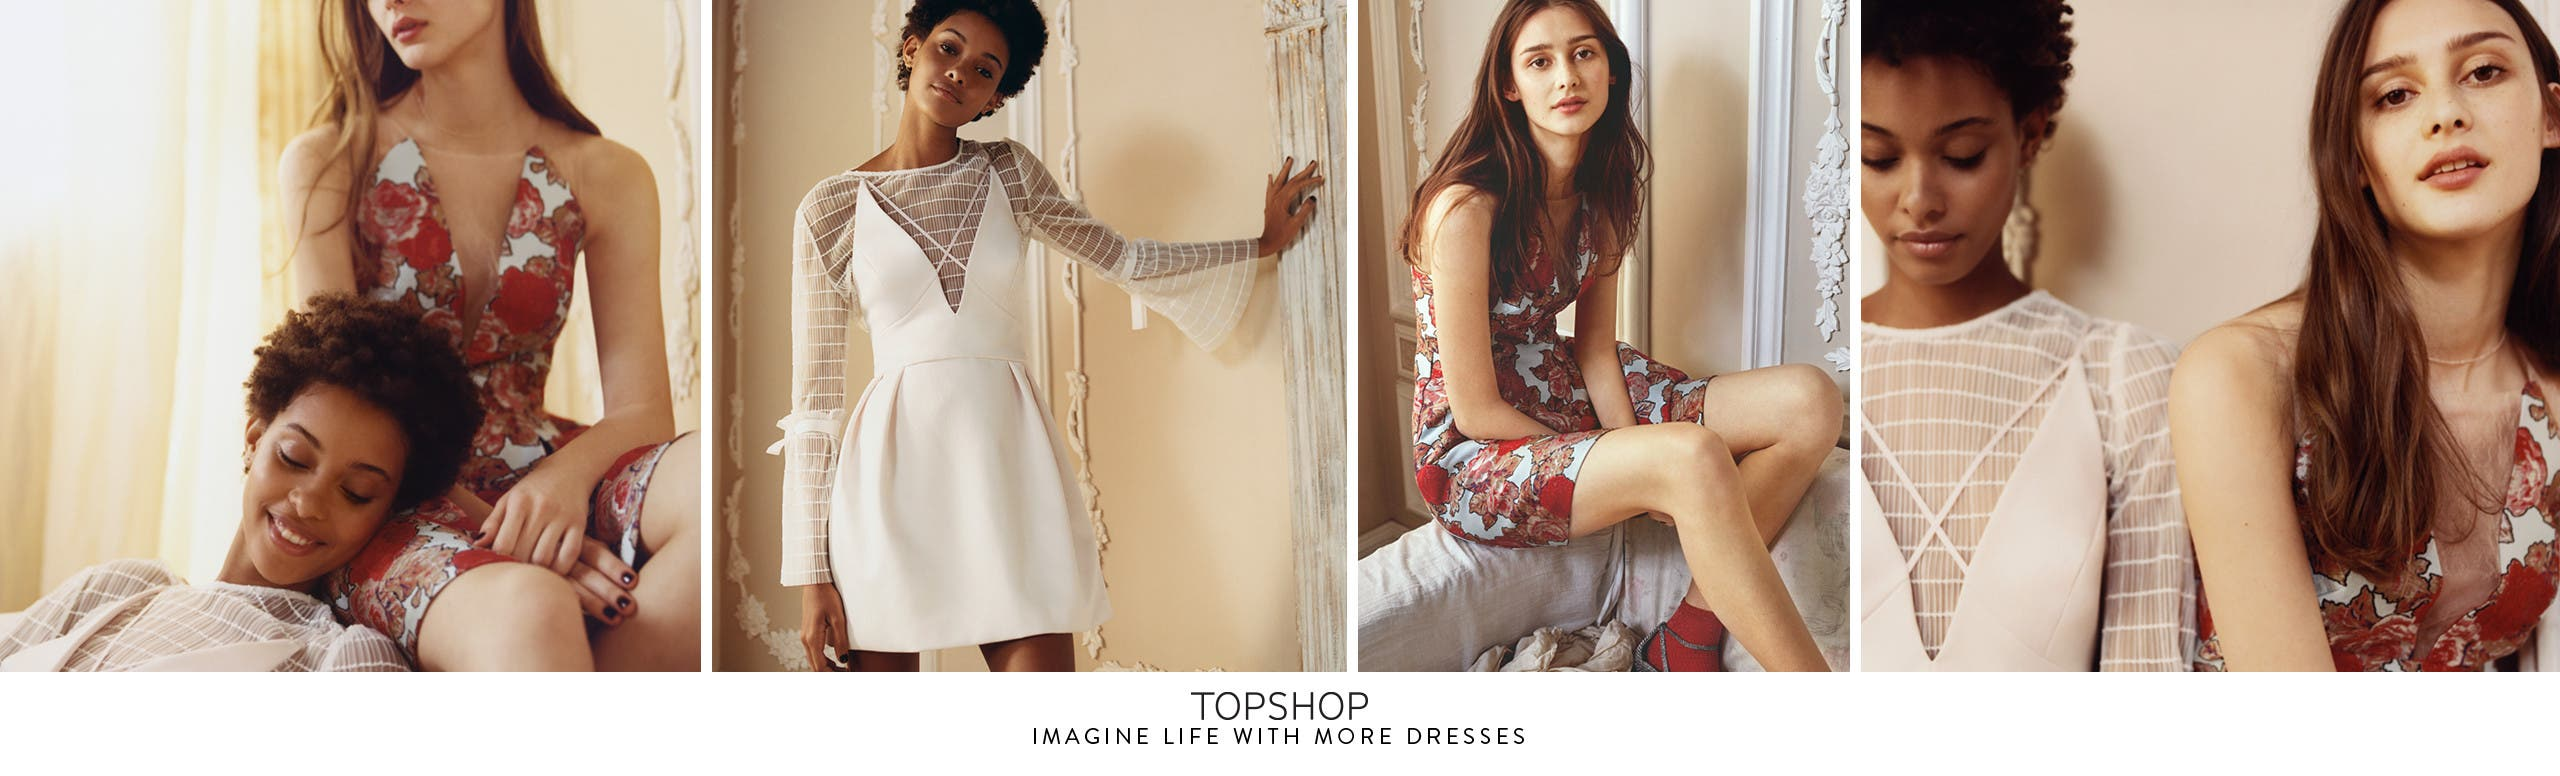 Trendy Fashion Clothing- Shoes &amp- Accessories for Women - Nordstrom